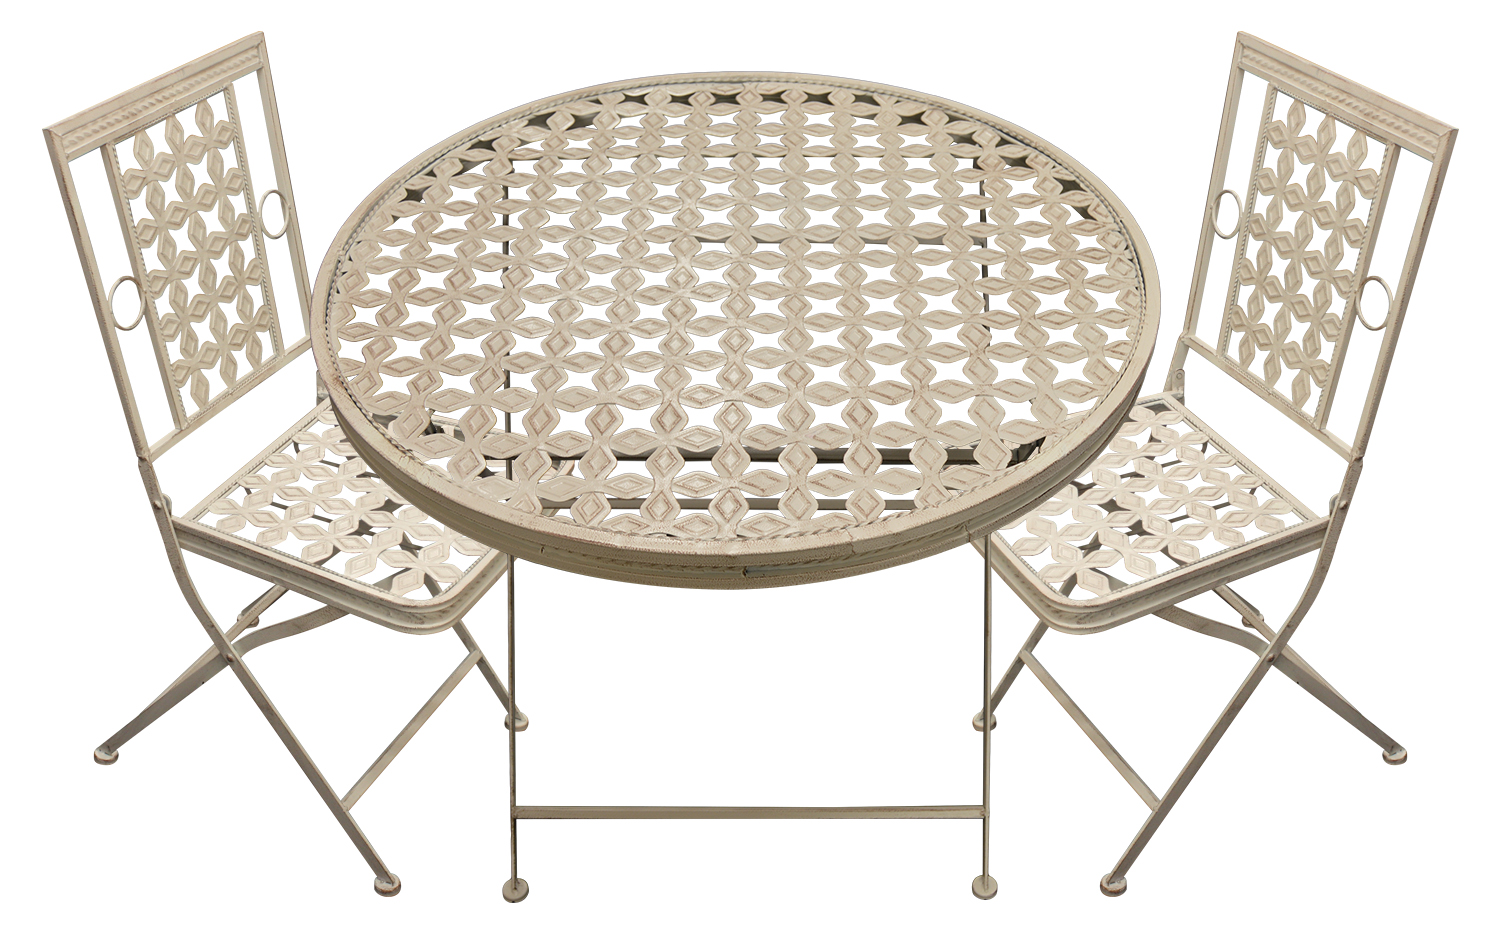 garden patio table with 2 square chairs outdoor metal furniture ebay